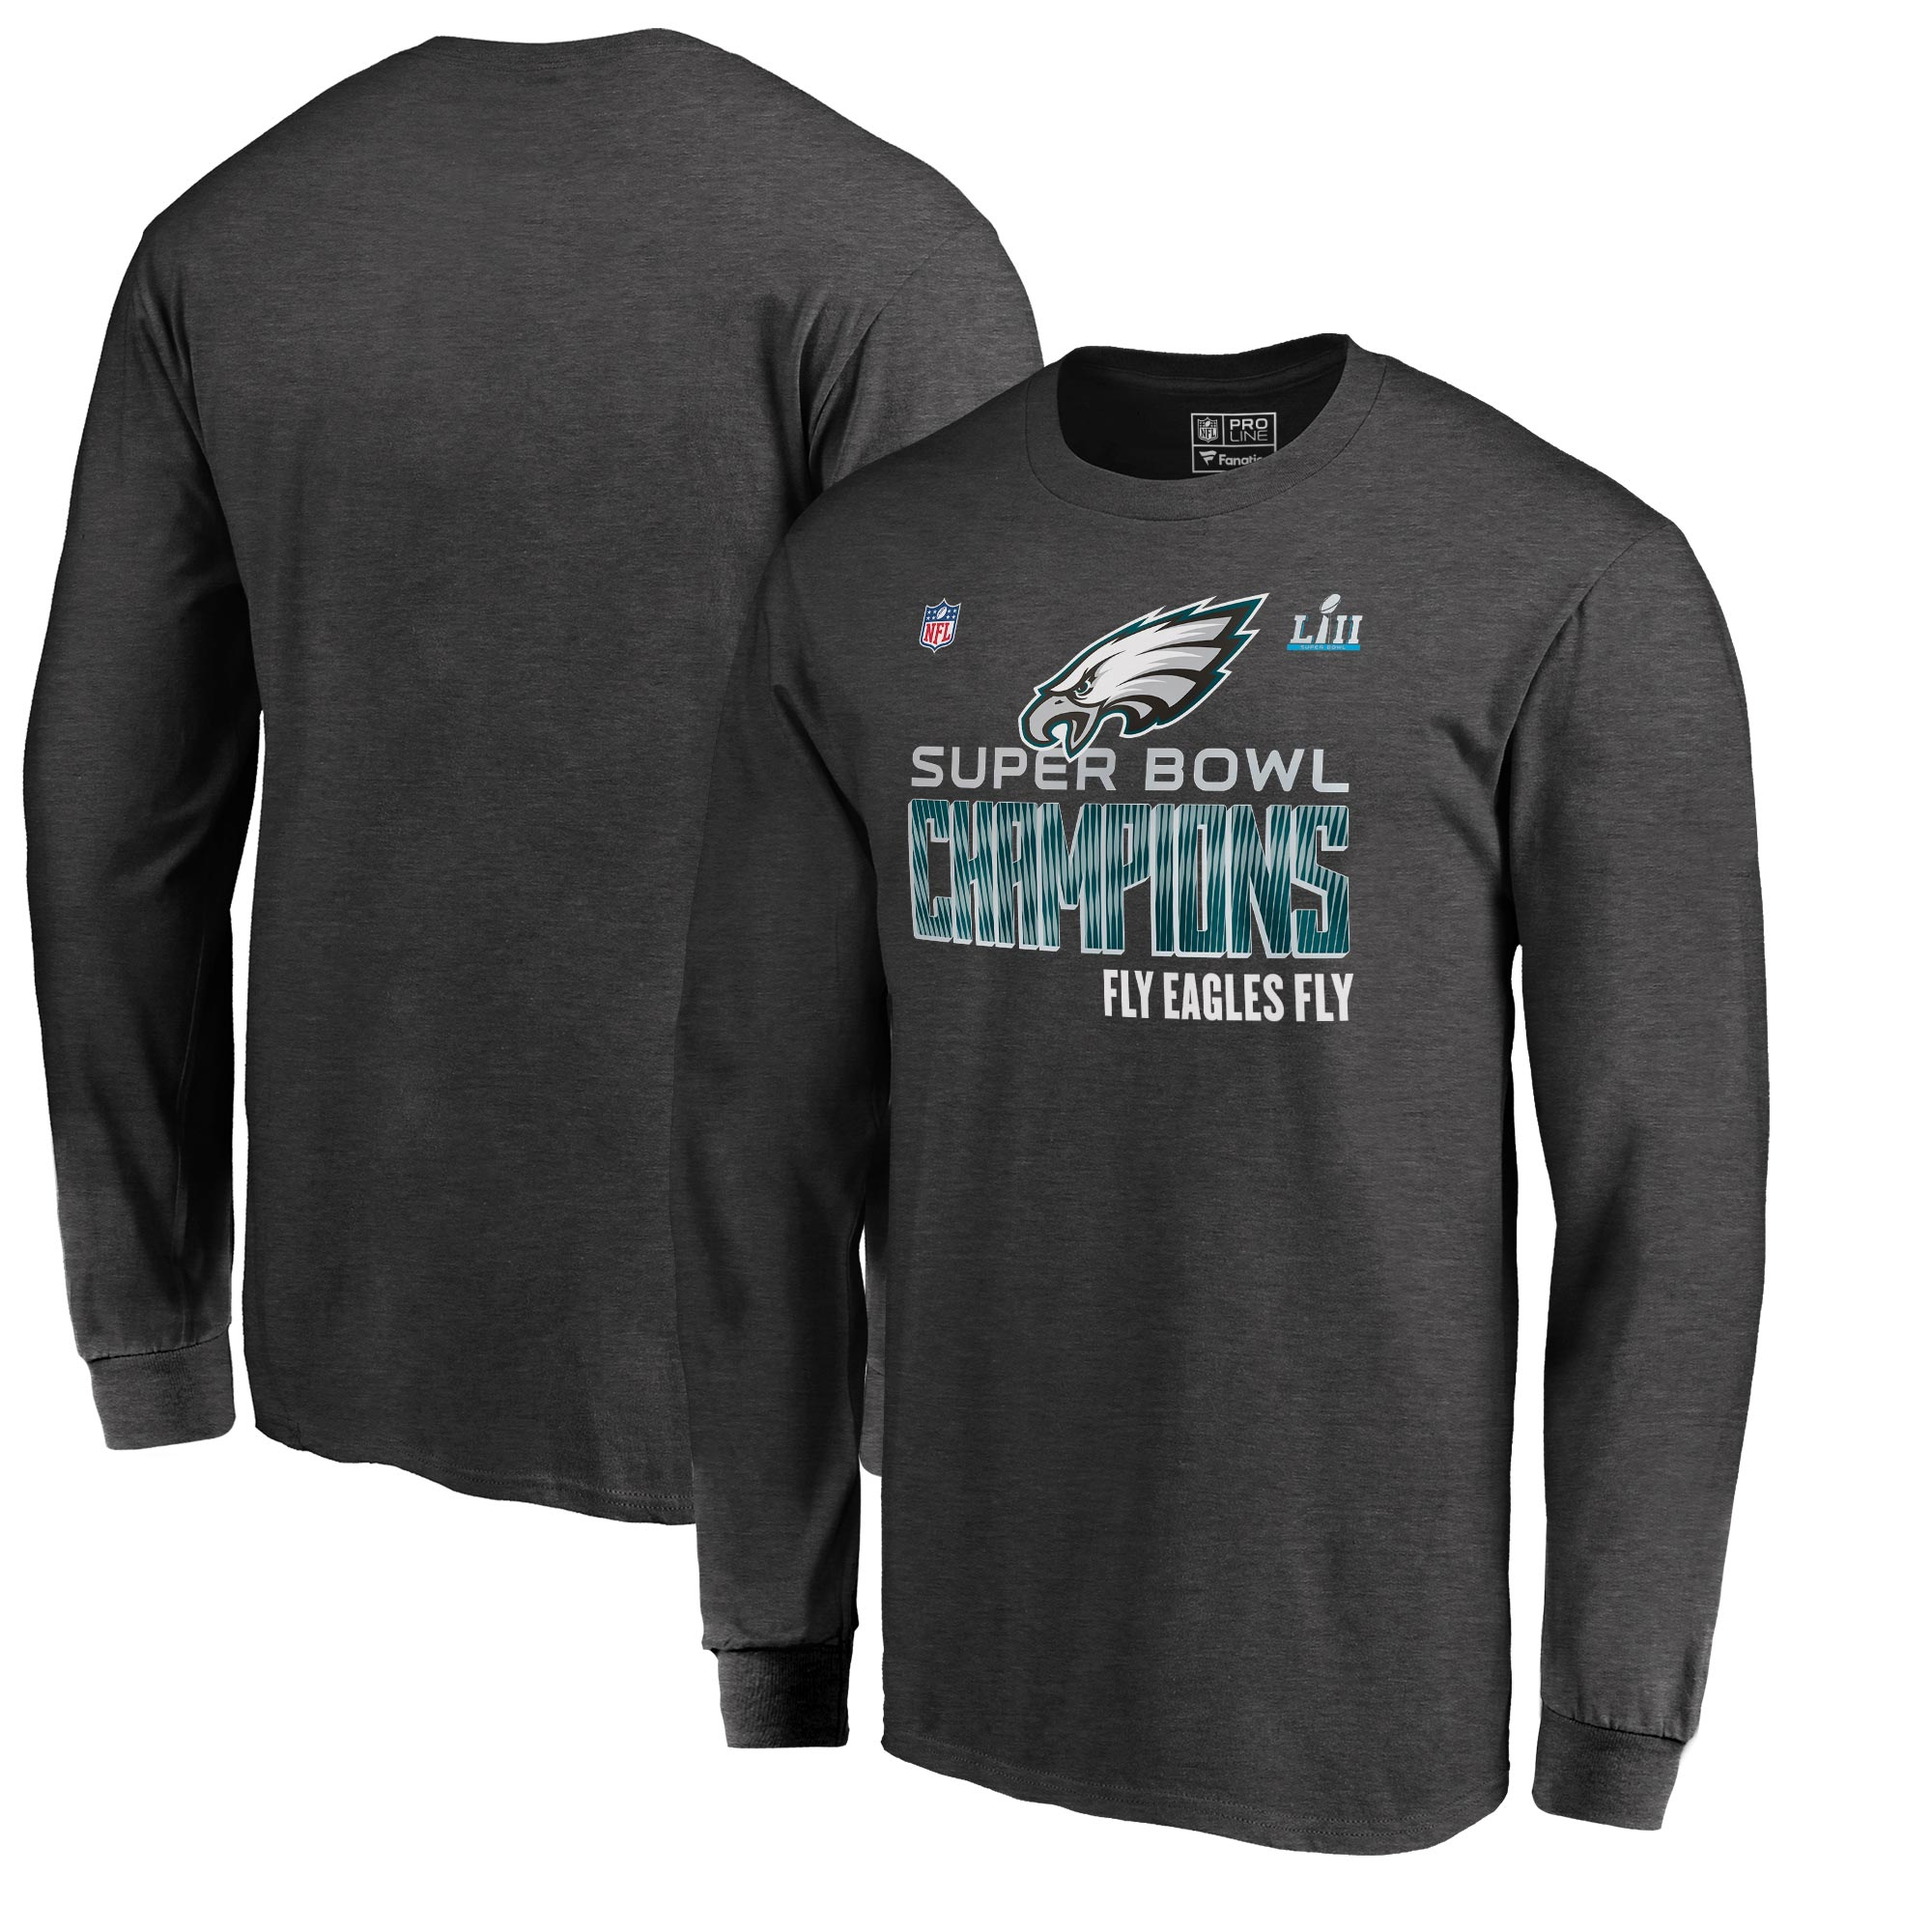 Philadelphia Eagles NFL Pro Line by Fanatics Branded Super Bowl LII Champions Trophy Collection Locker Room Long Sleeve T-Shirt - Charcoal